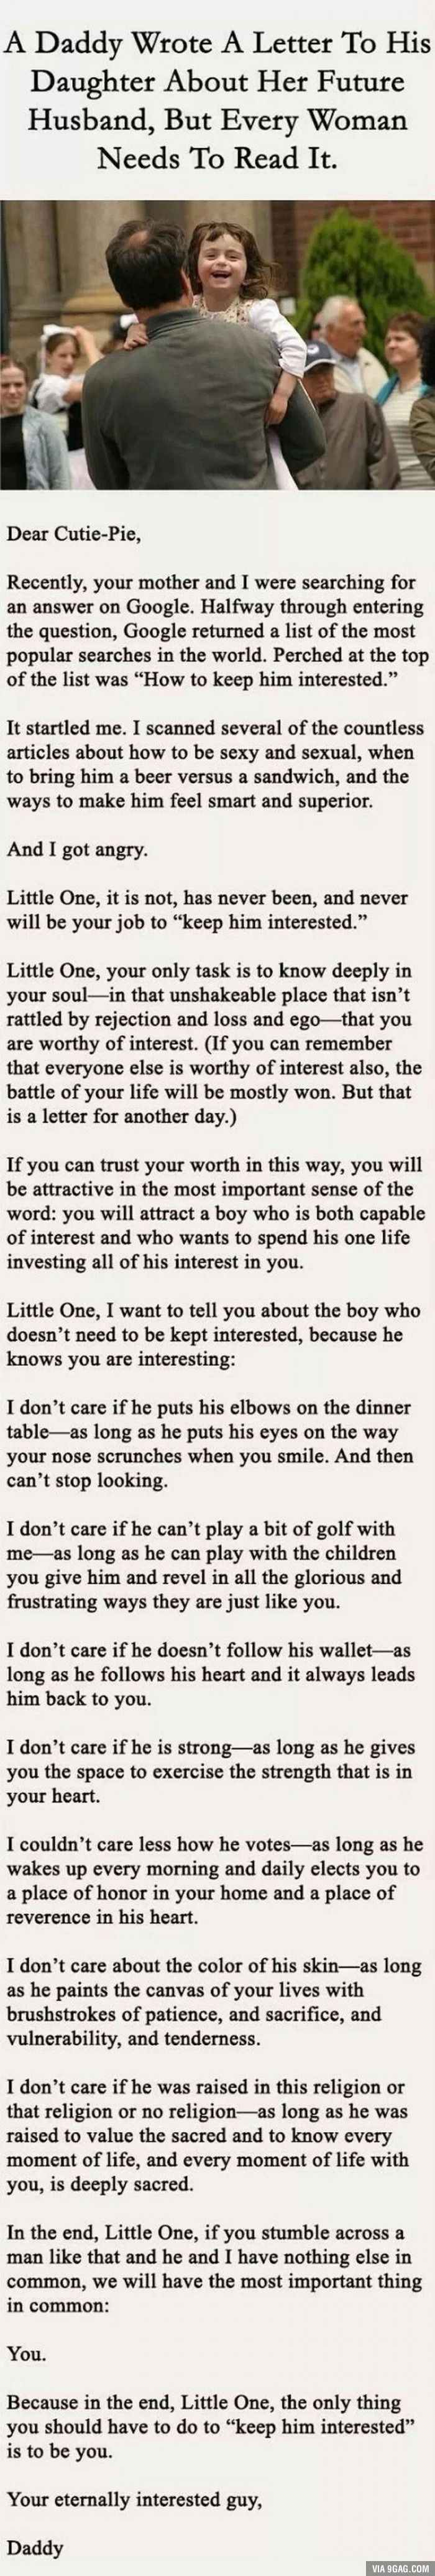 A letter from father to his daughter about picking the right man - unbelievably sweet!